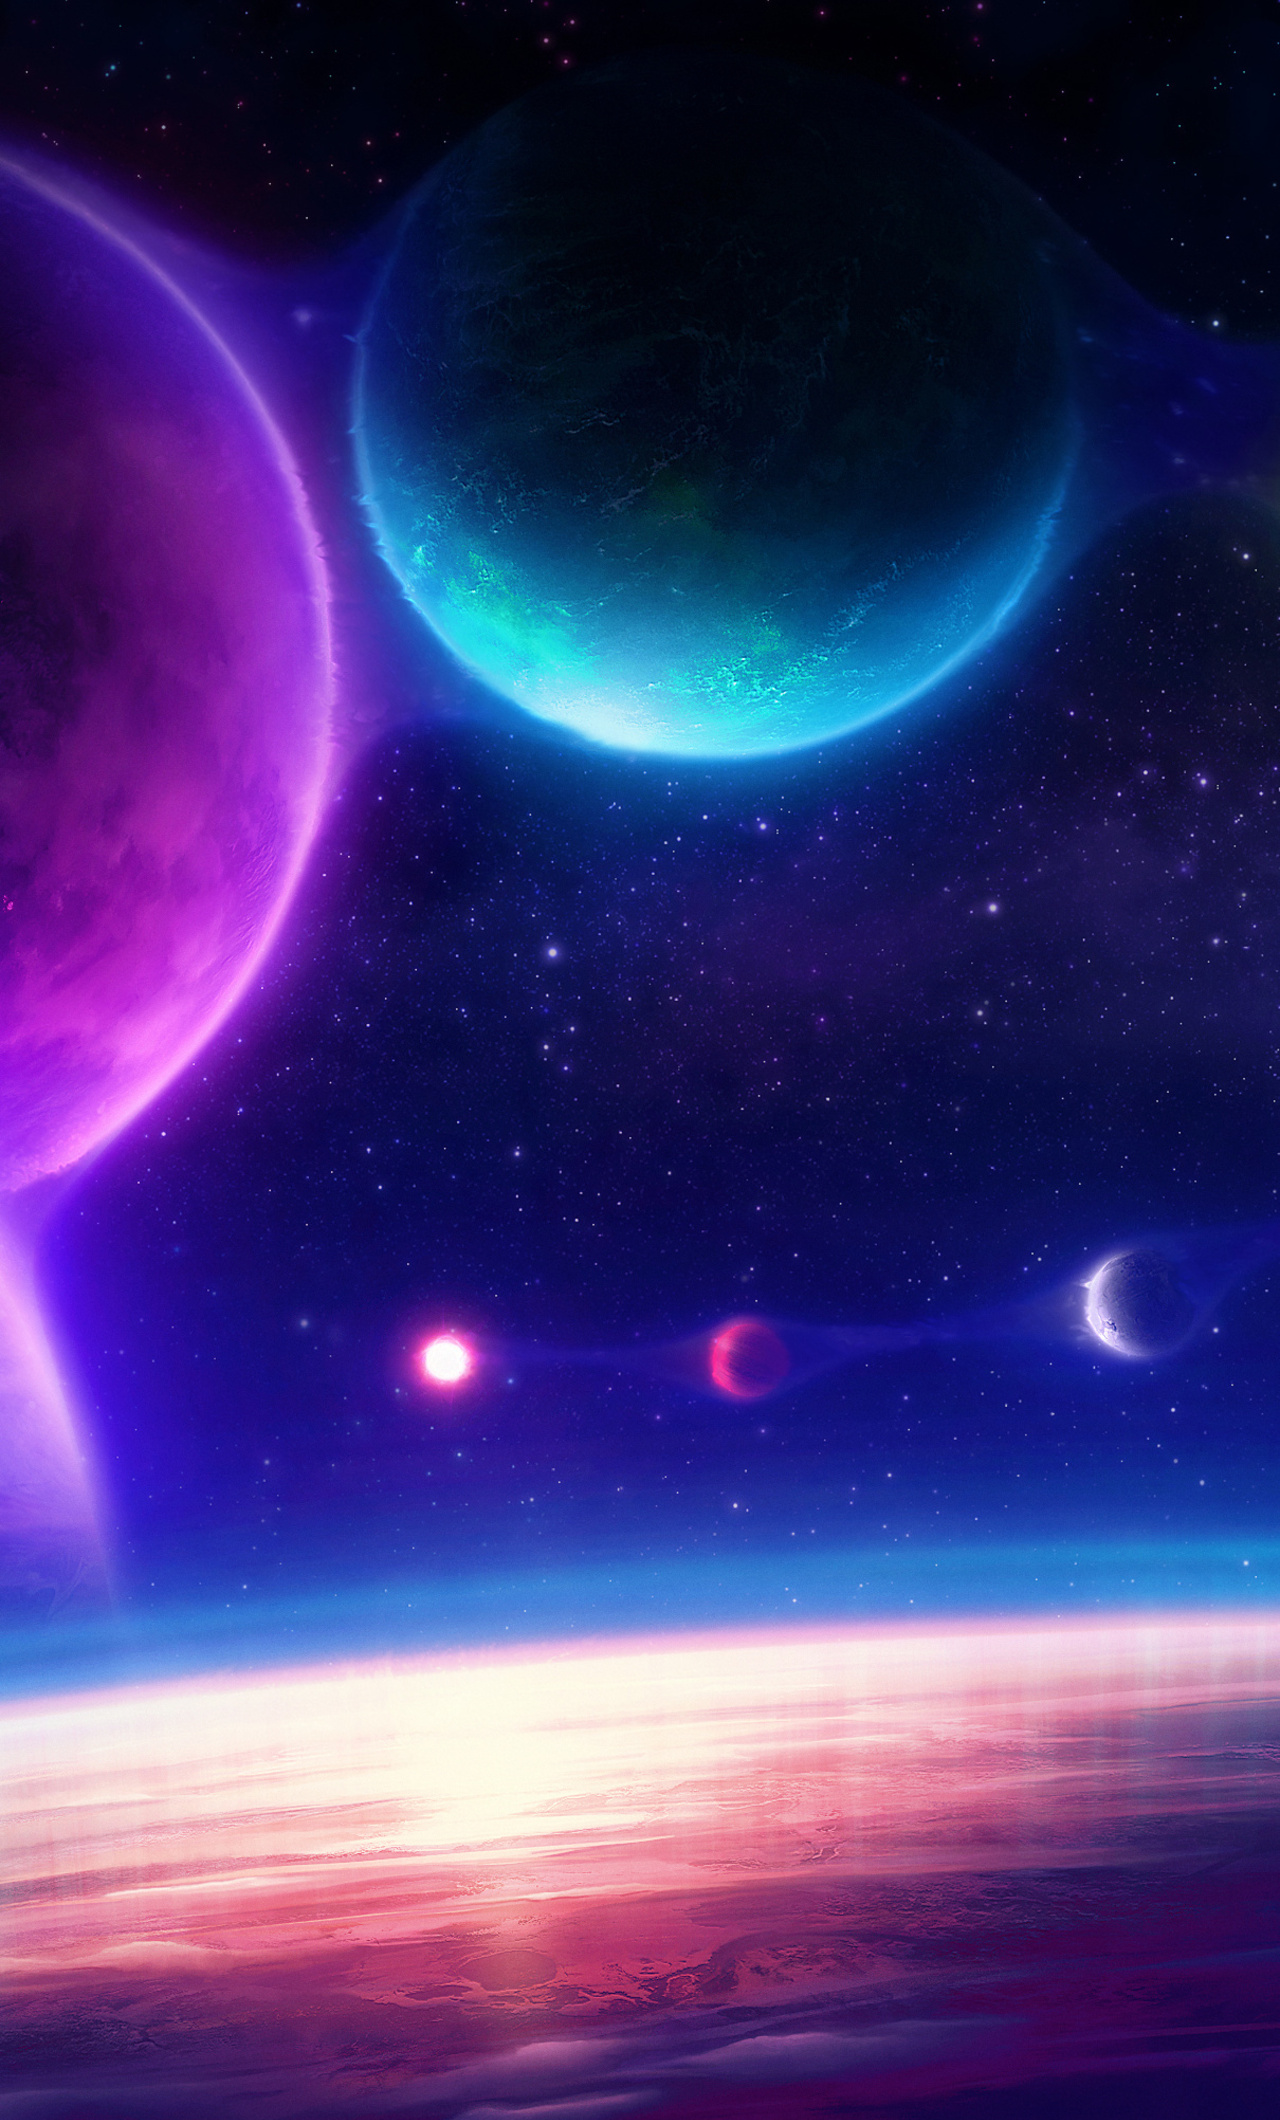 colorful-planets-chill-scifi-pink-4k-zs.jpg